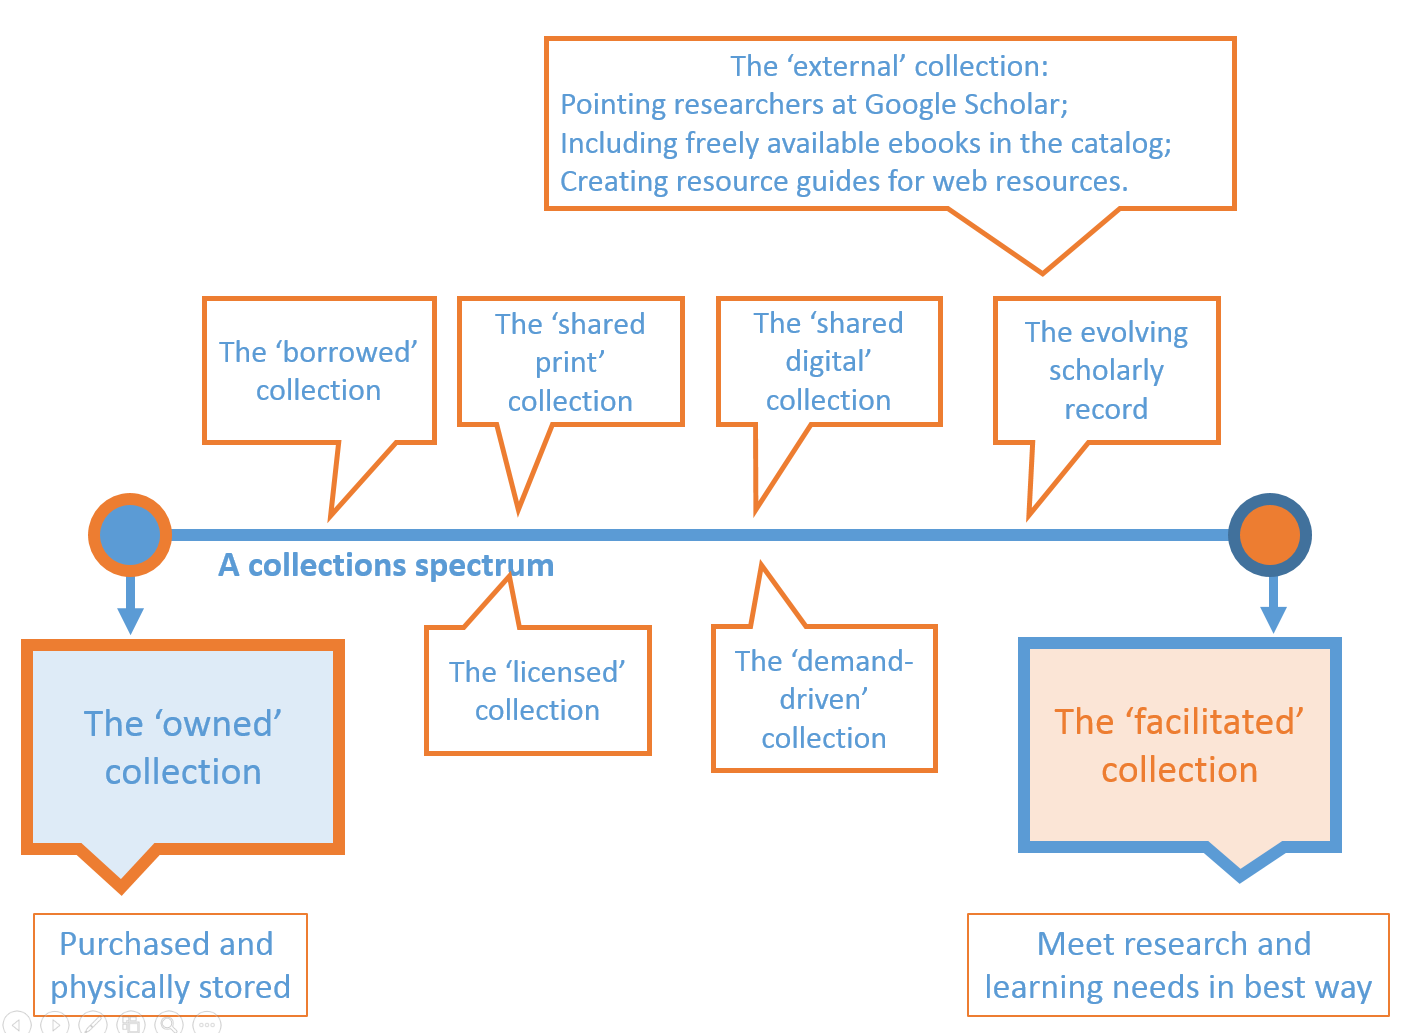 The facilitated collection